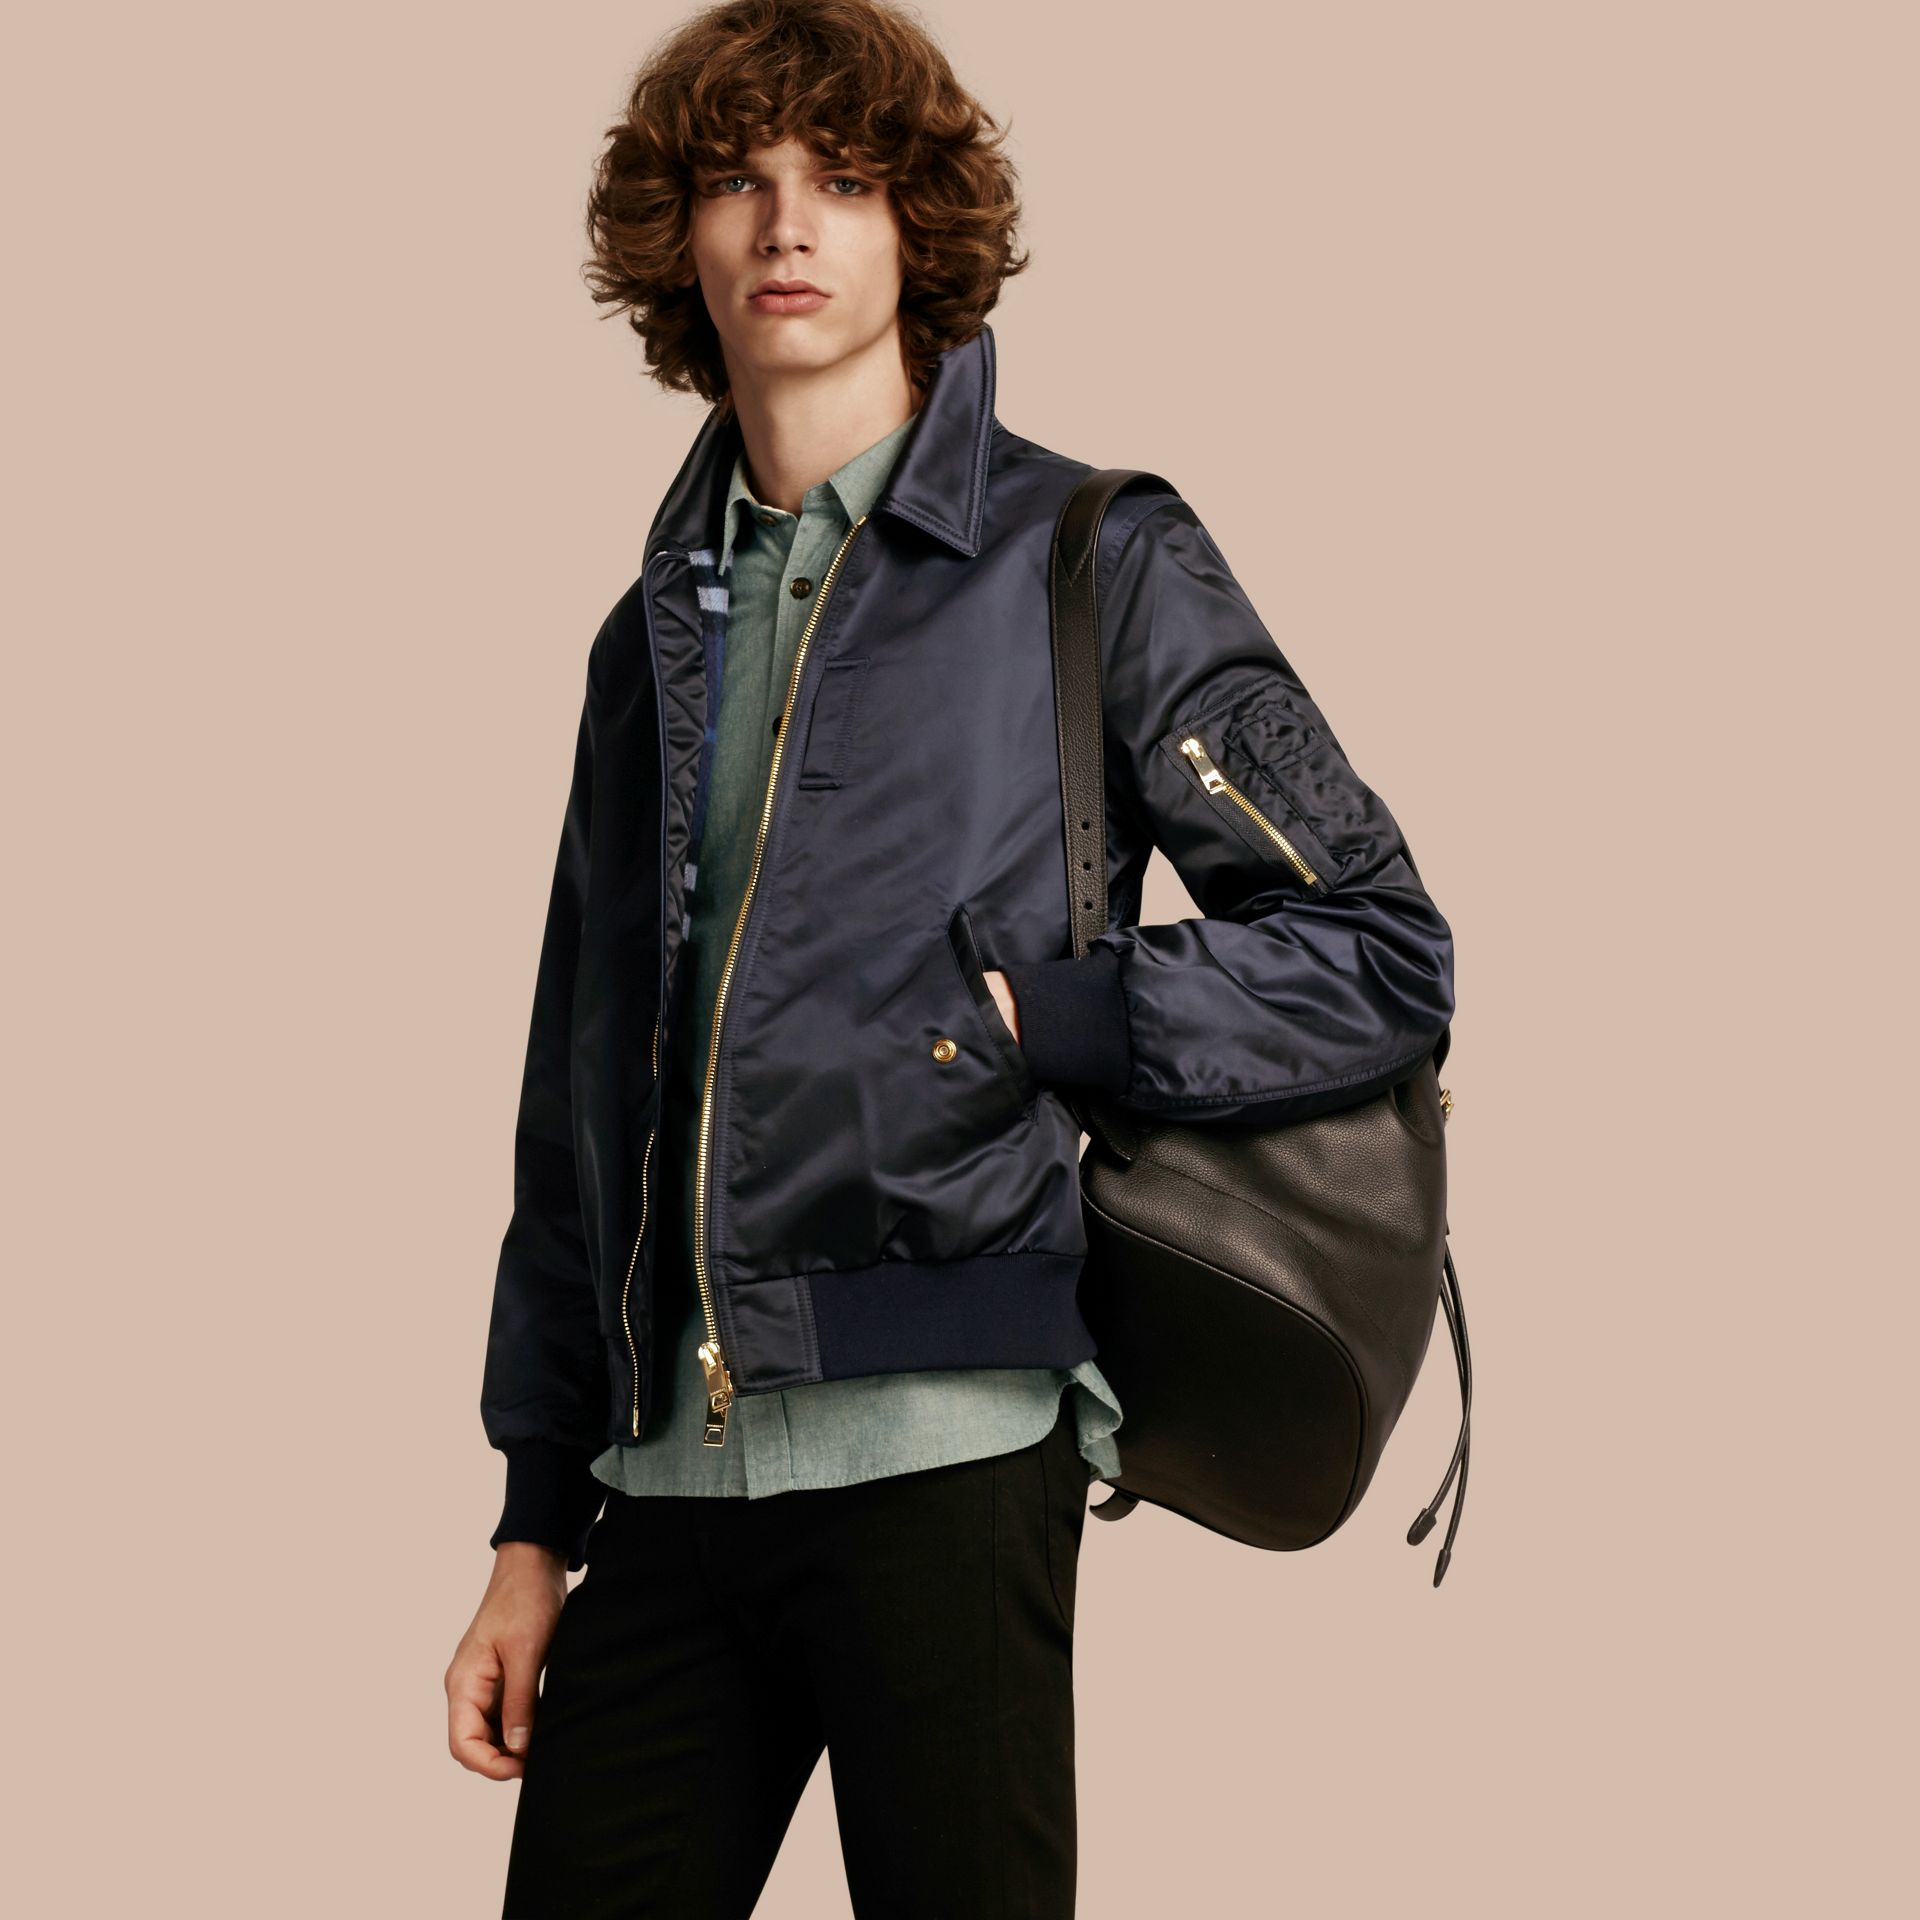 Navy Satin Bomber Jacket with Check Undercollar Navy - gallery image 1